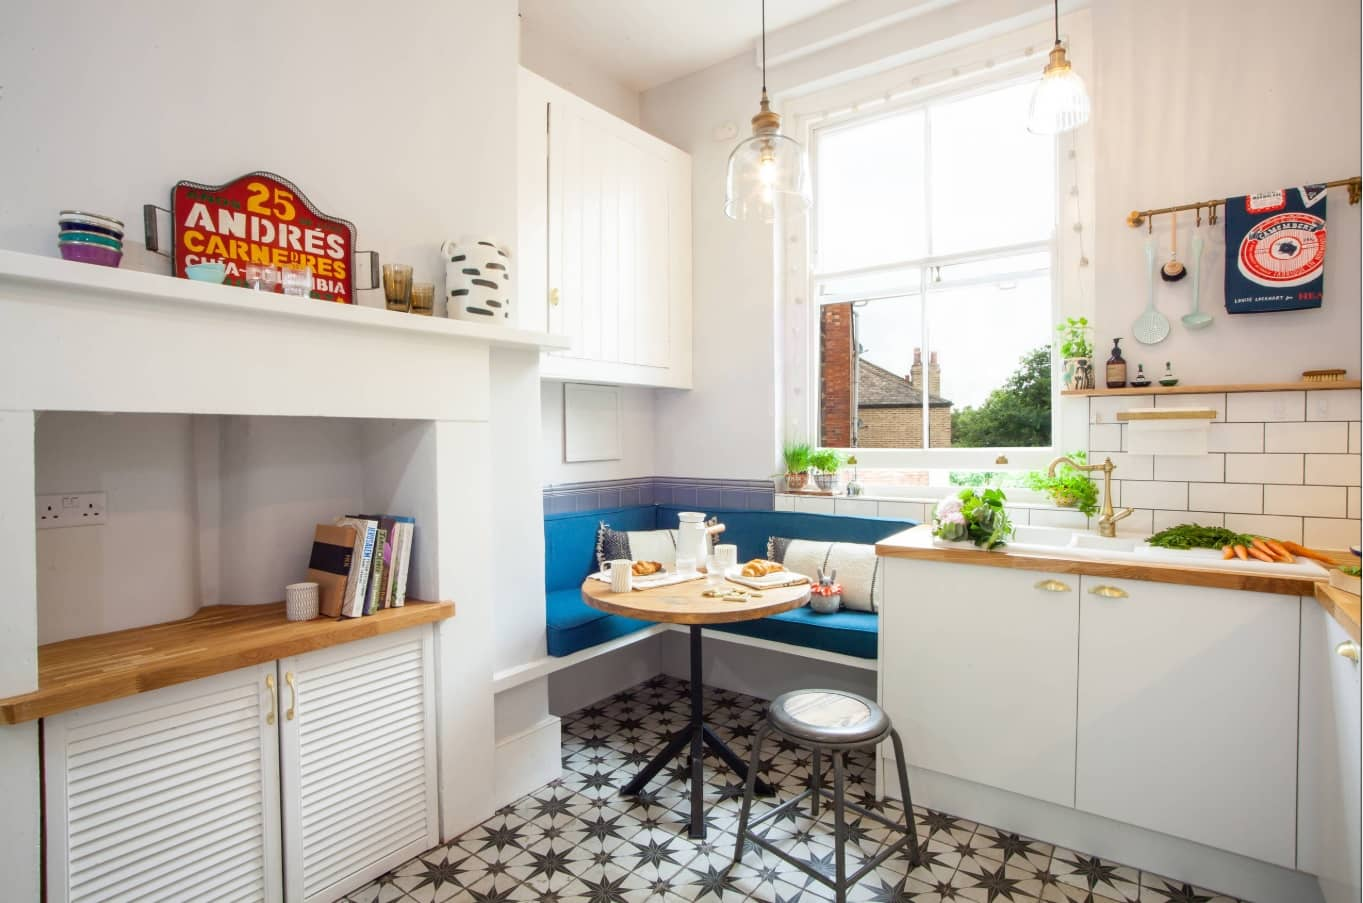 Tiny Home Interiors that Can Inspire Making Your Space more Functional. Dark pattern on the floor of the white decorated kitchen with dining zone at the window